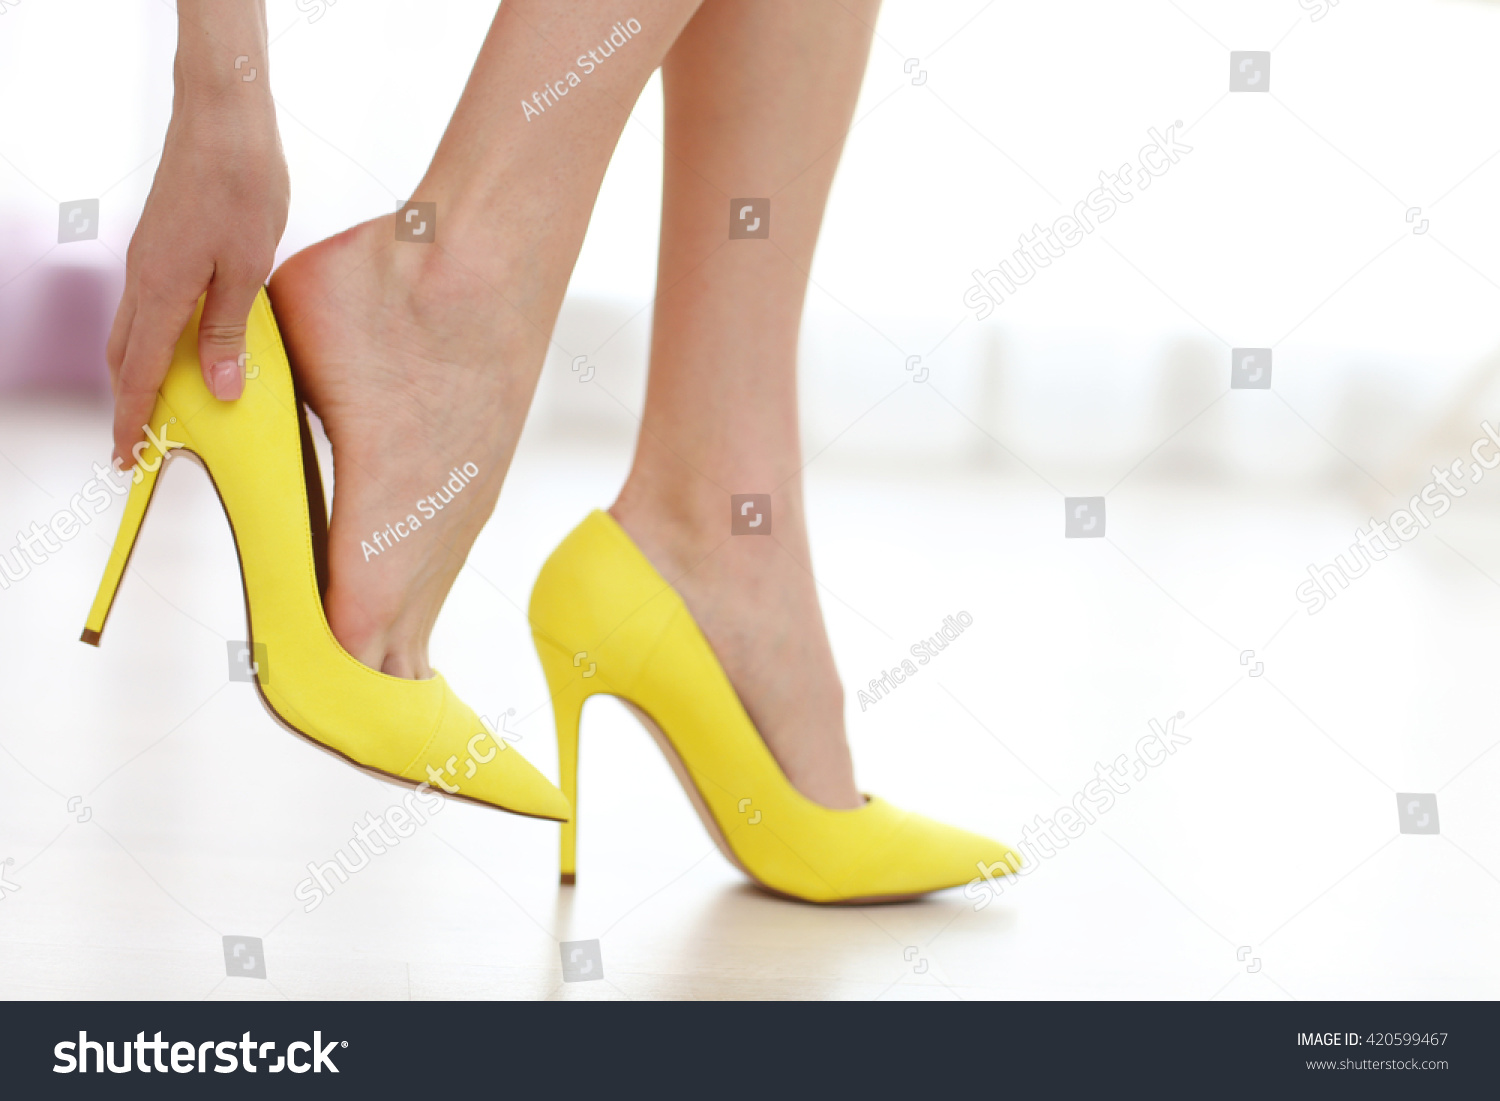 Woman taking off yellow high heels shoes. #420599467